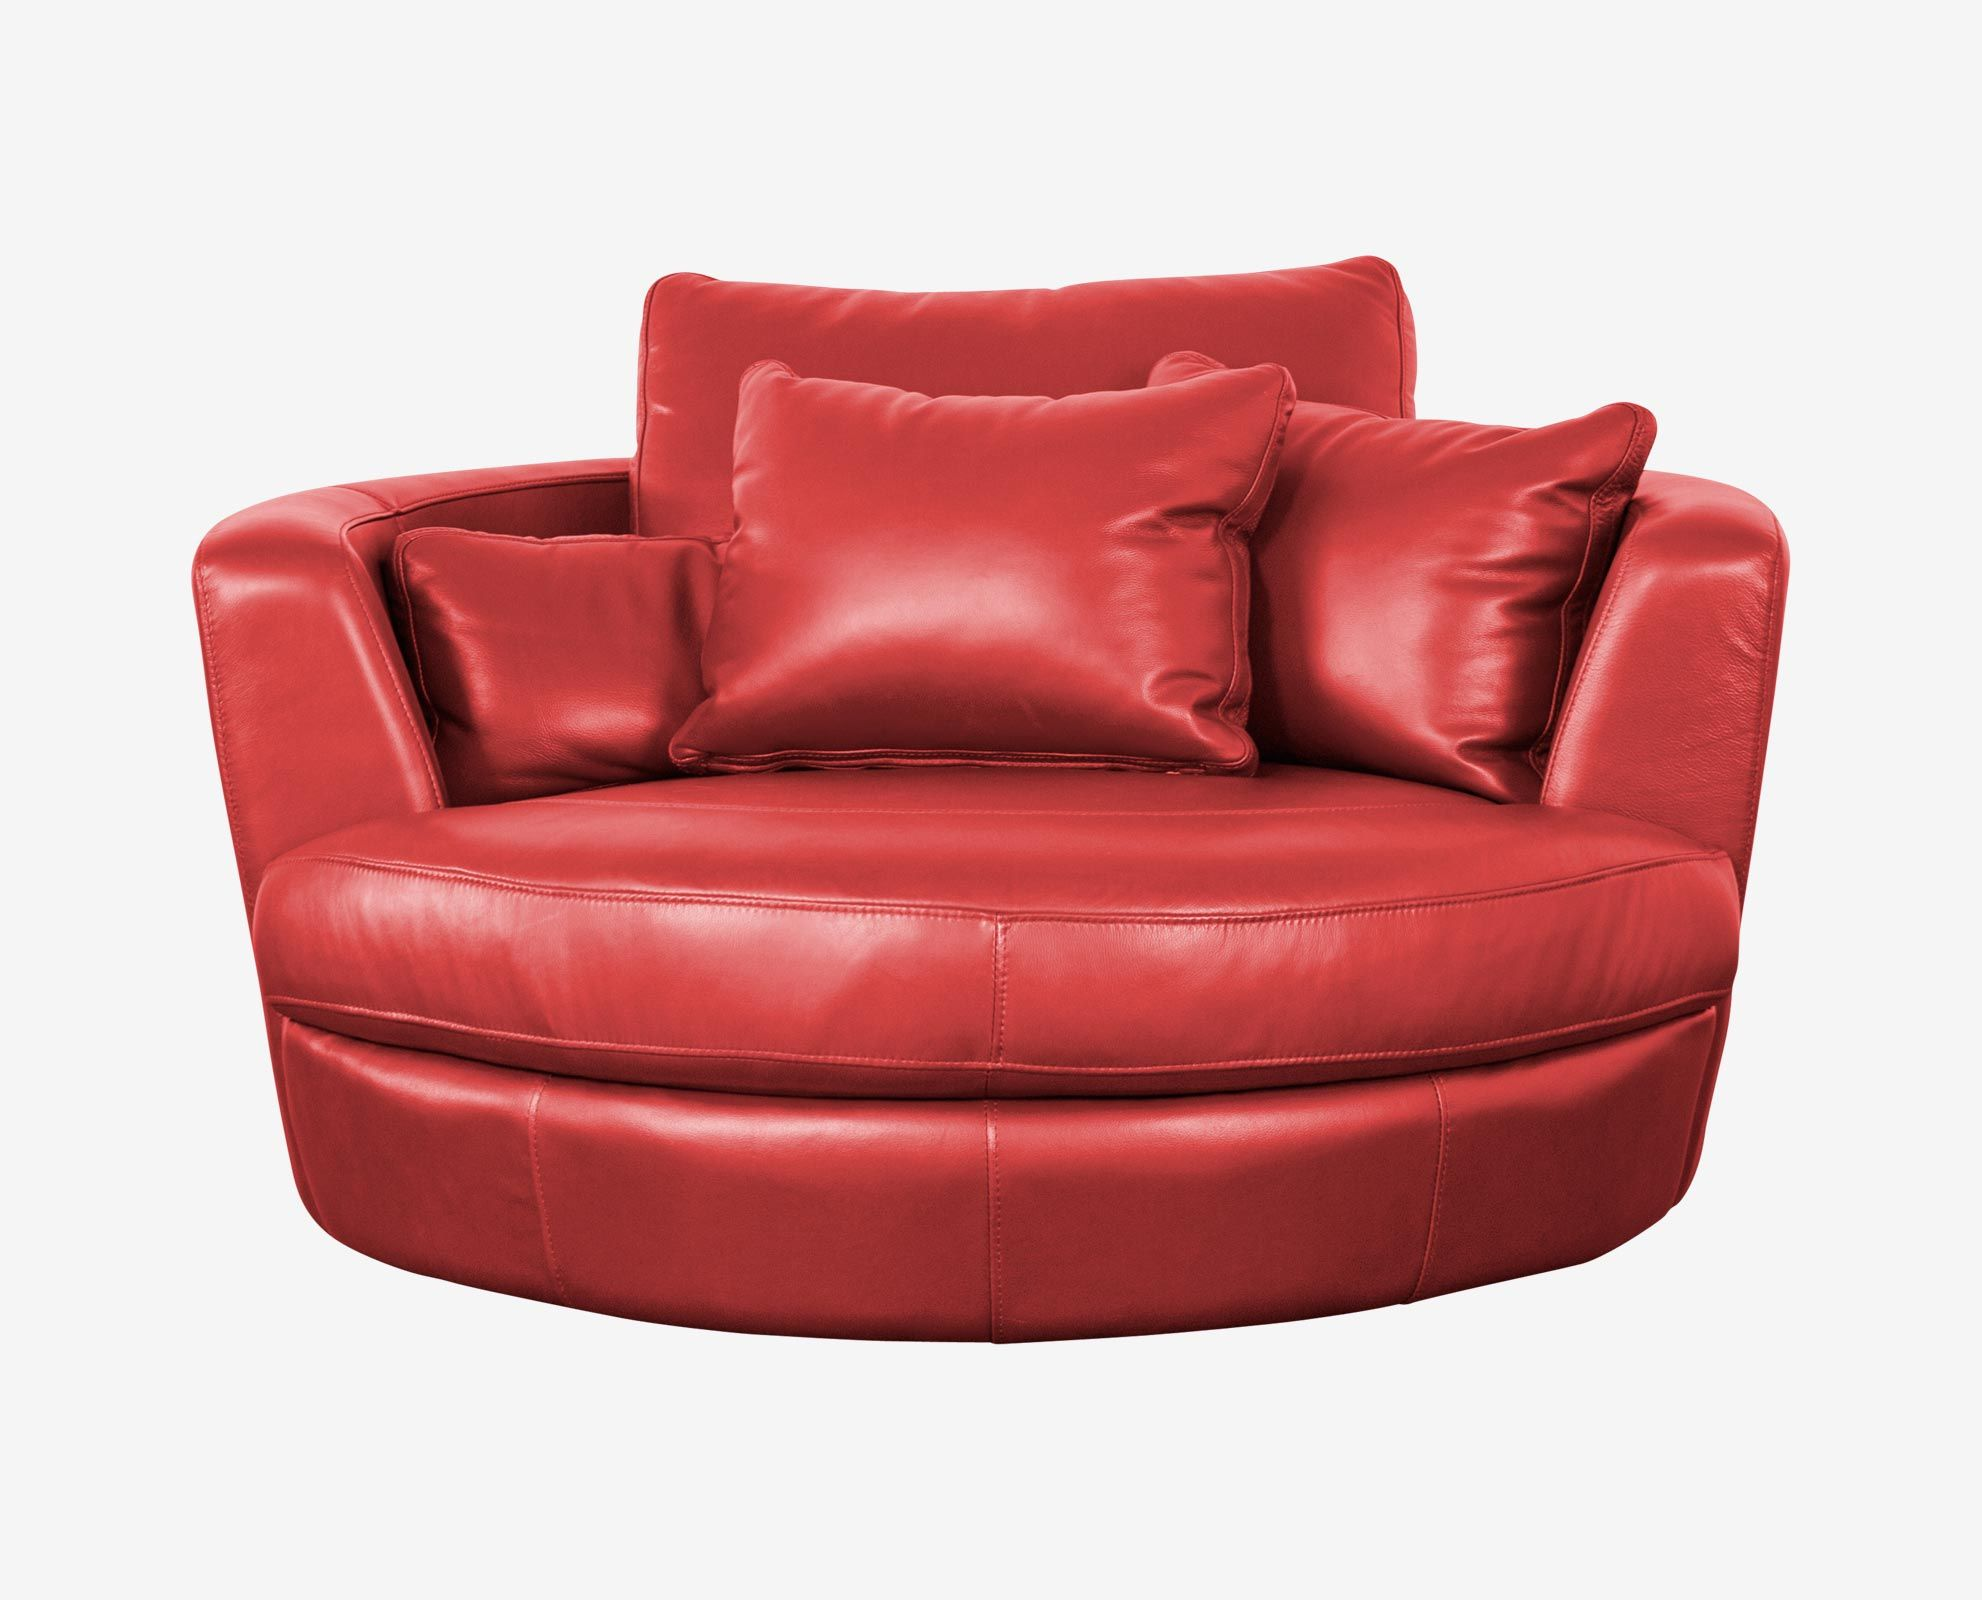 Copel Swivel Lounge Chair 53  round -- too big? : round swivel lounge chair - lorbestier.org